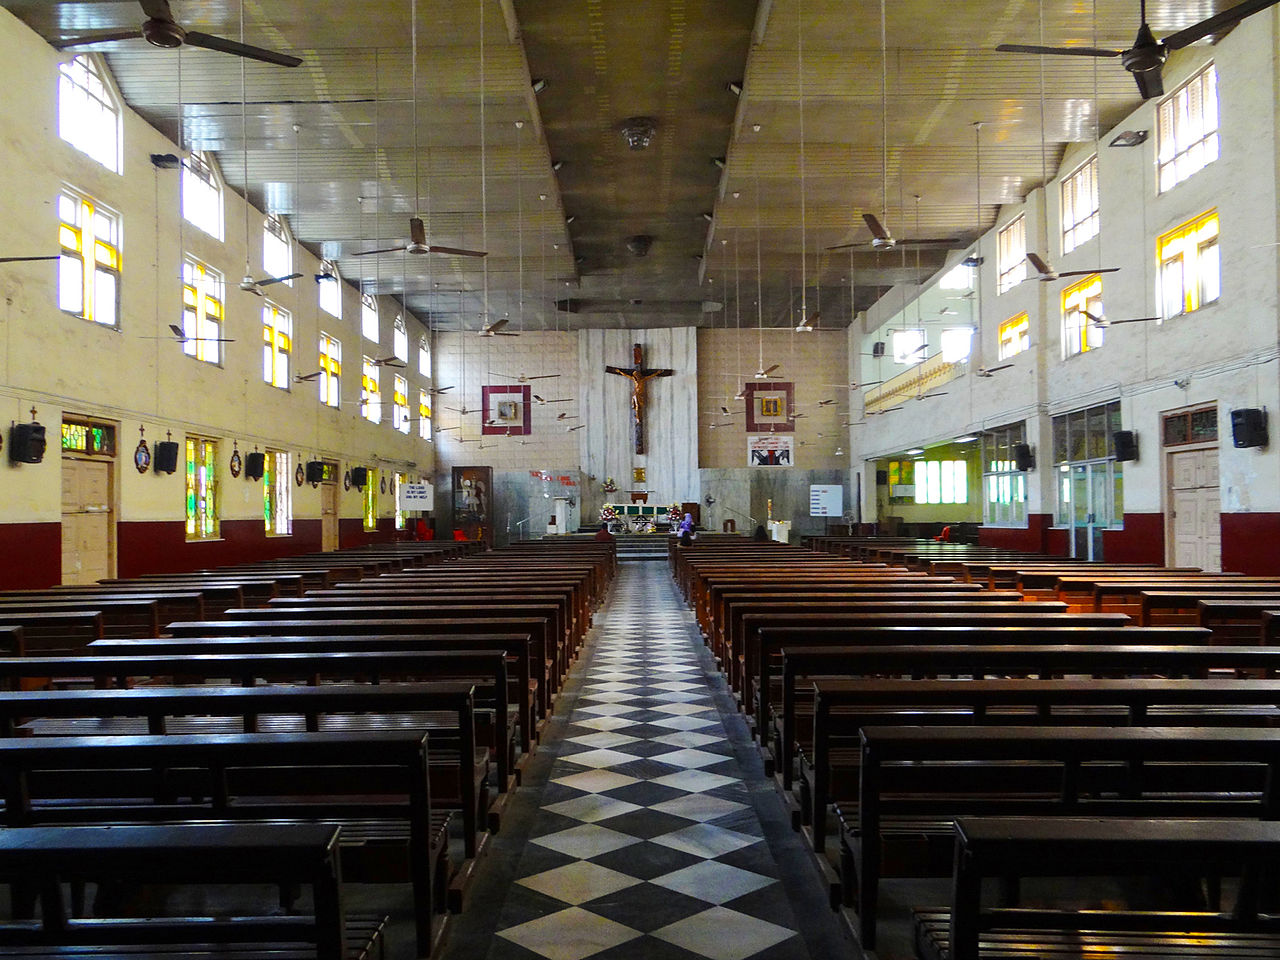 St. Michaels Church - One of the Oldest Catholic Churches in Mahim, Mumbai